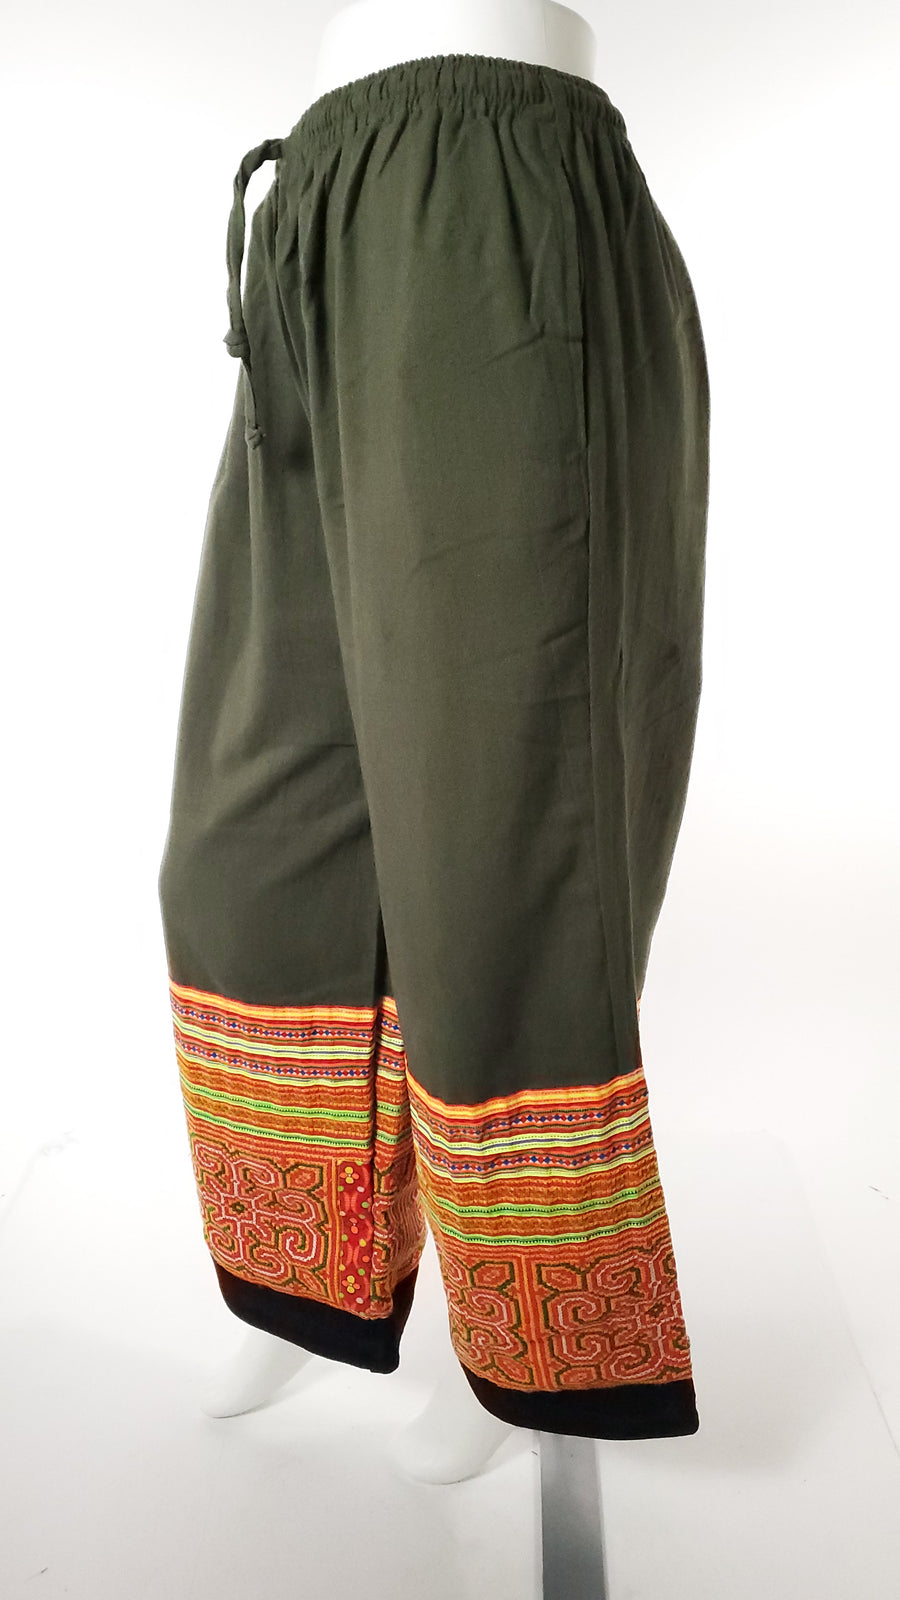 Upcycled Tribal Fabric Pants in Green-The High Thai-The High Thai-Yoga Pants-Harem Pants-Hippie Clothing-San Diego